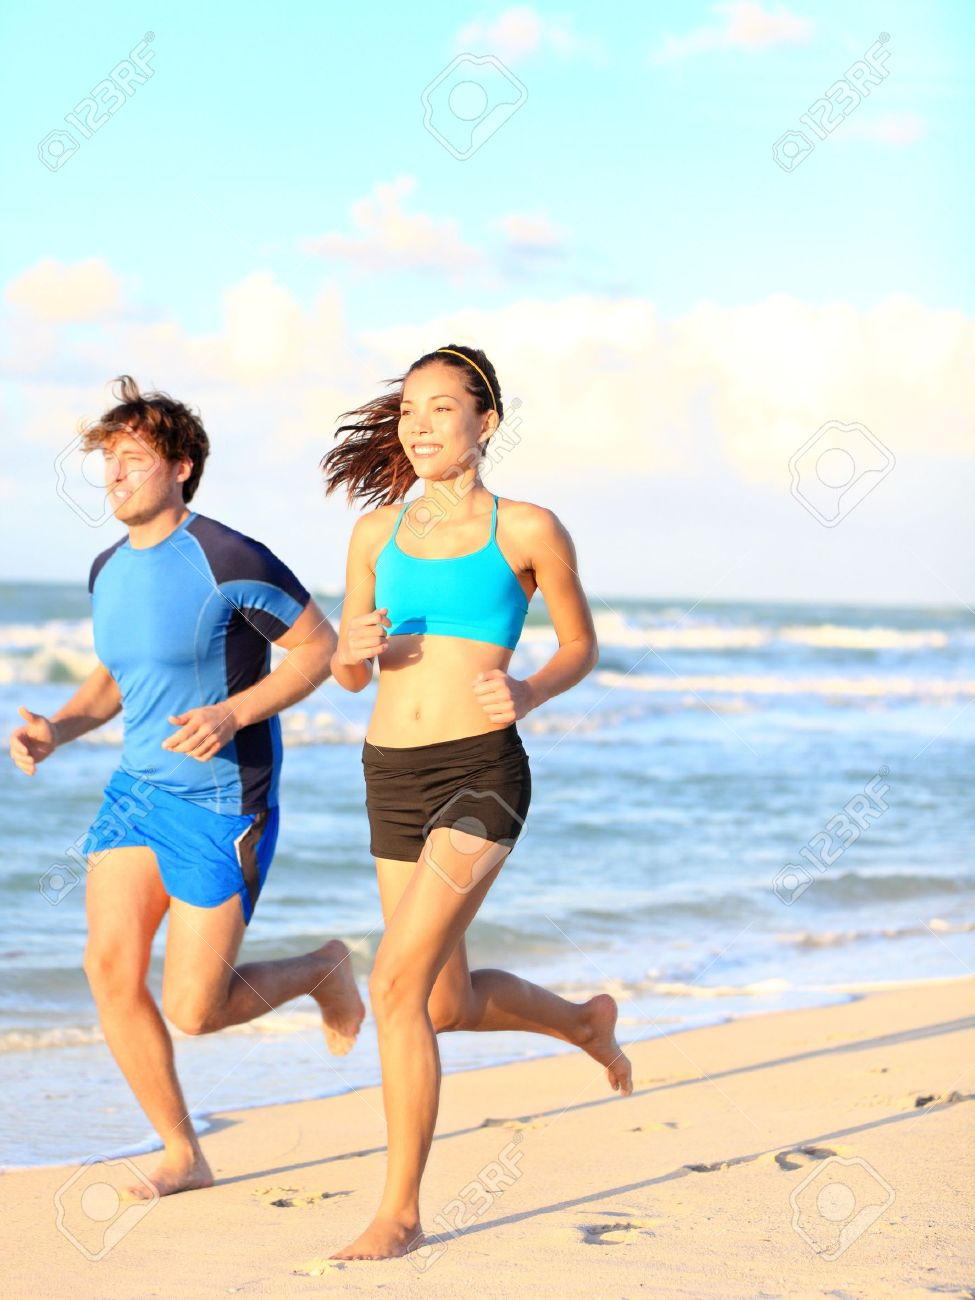 running-on-beach